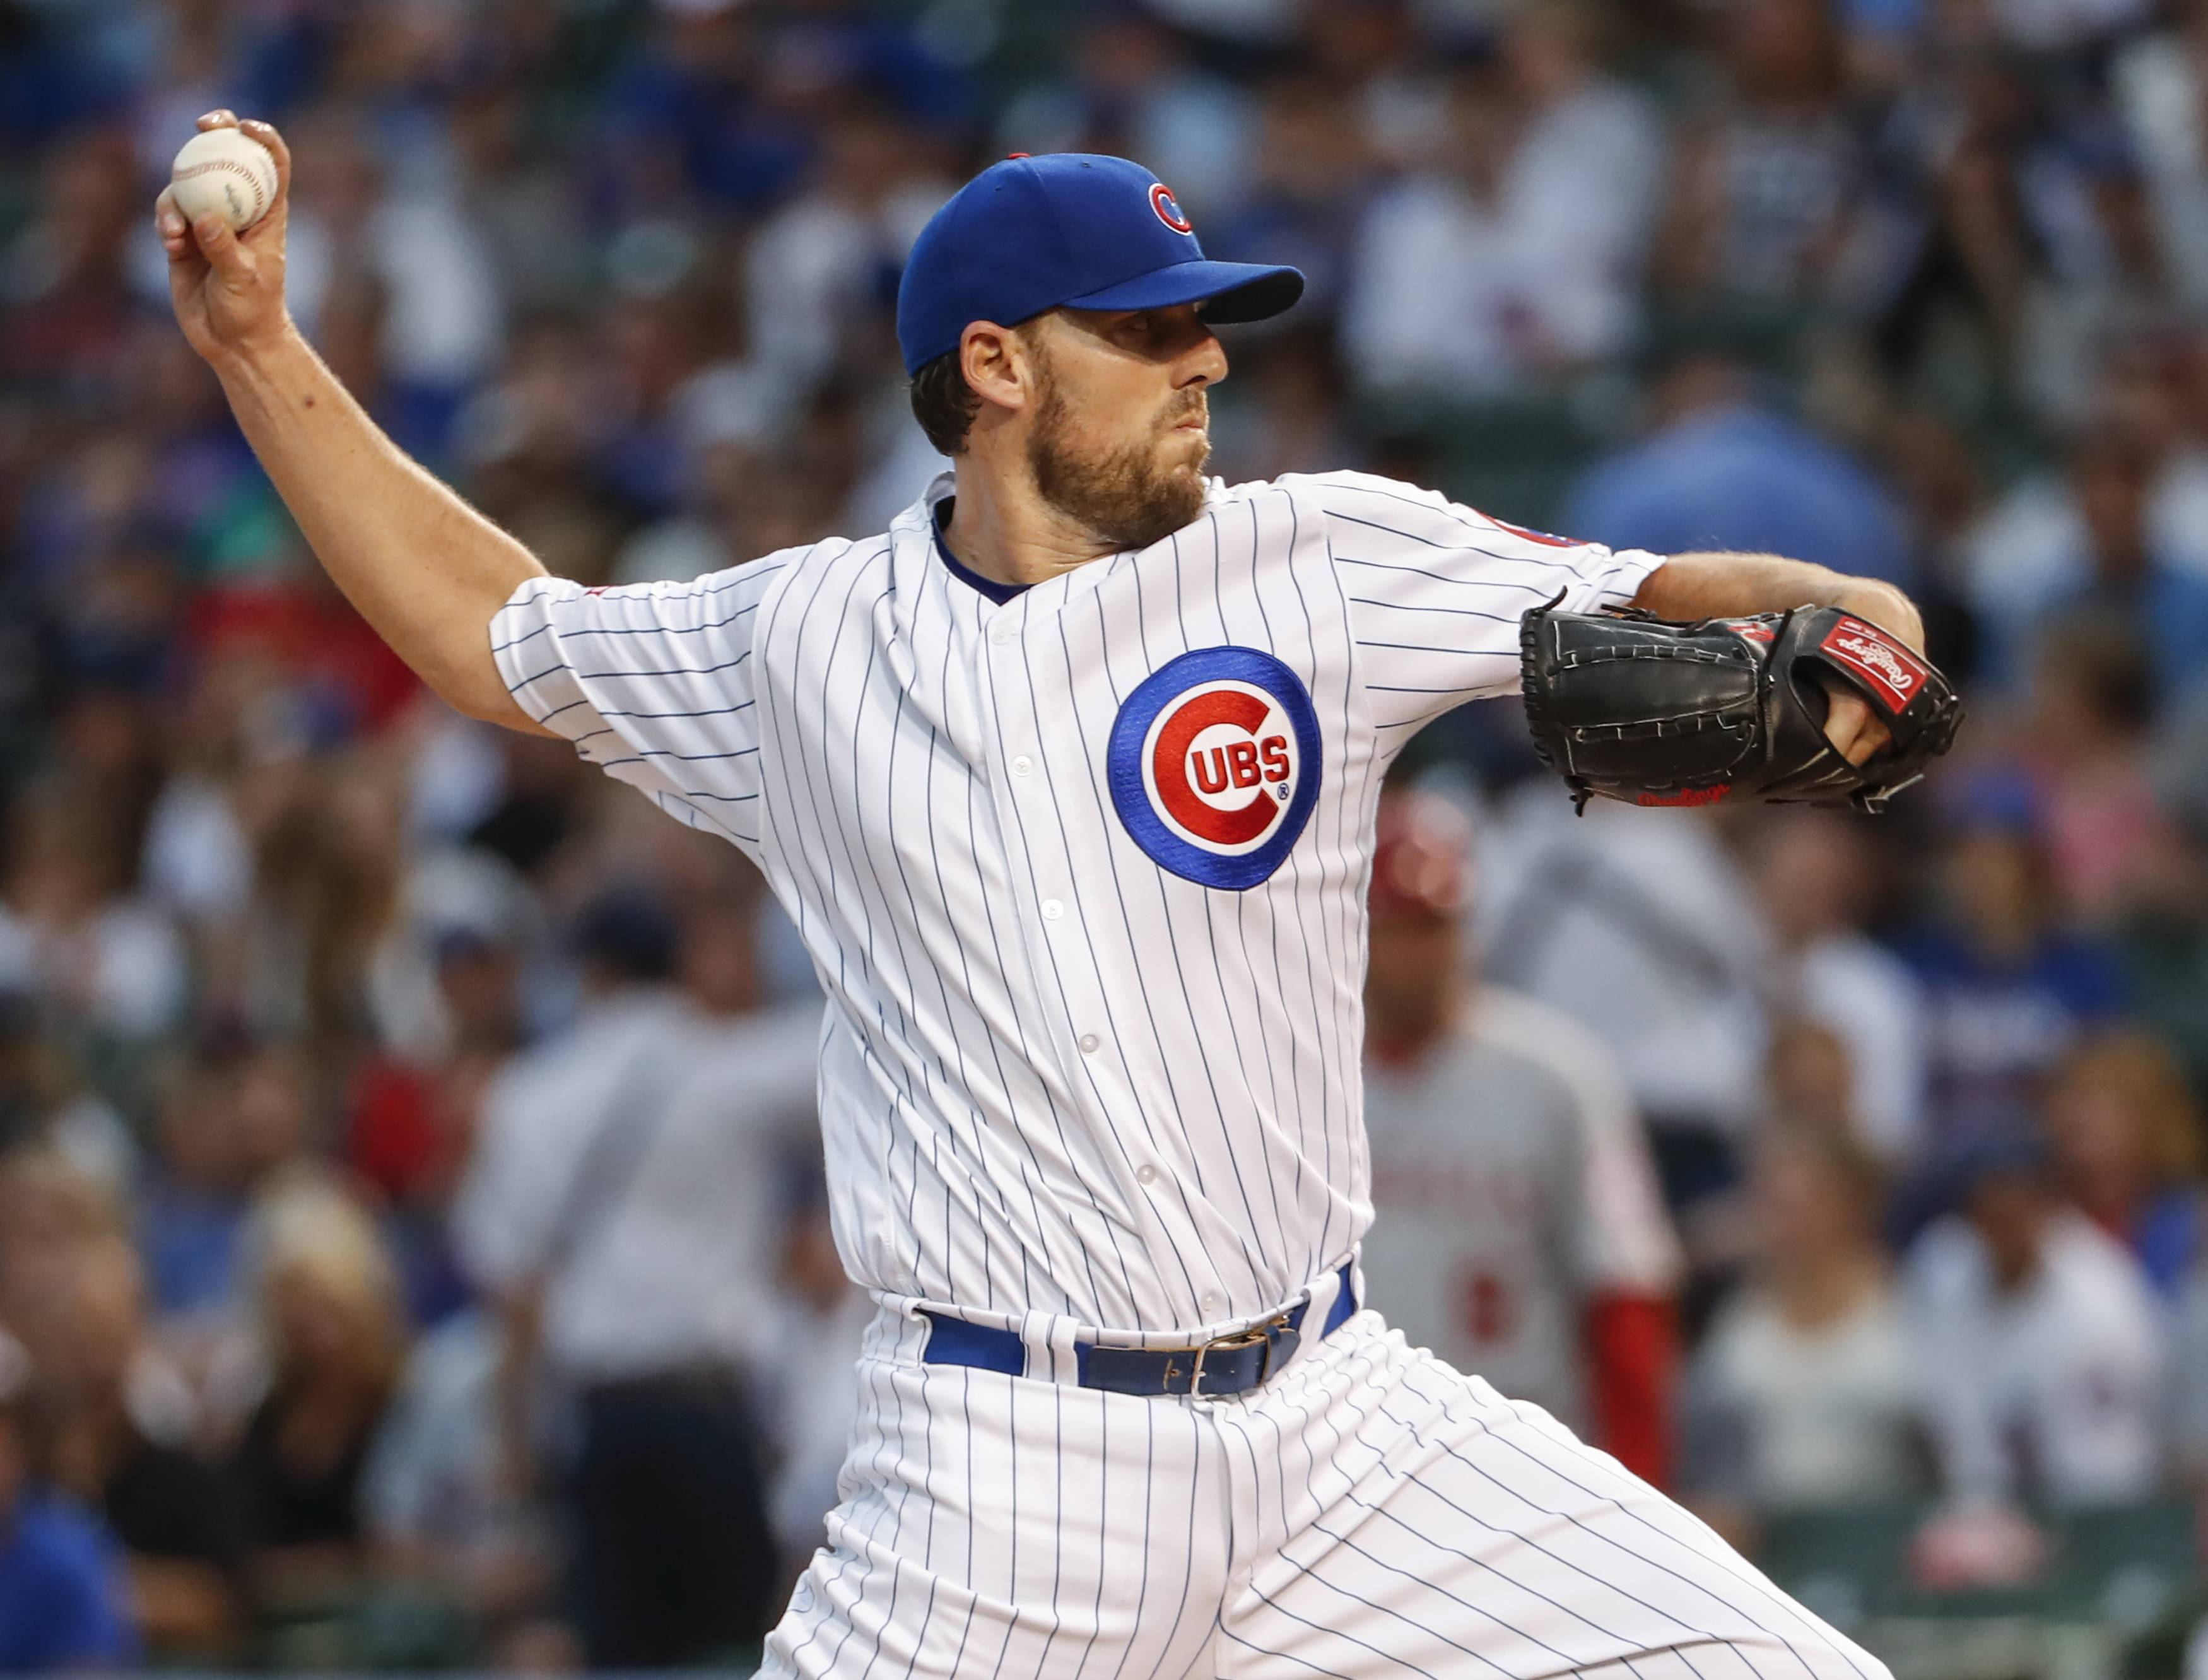 Kasper: For Cubs, priorities come into focus as playoffs get closer